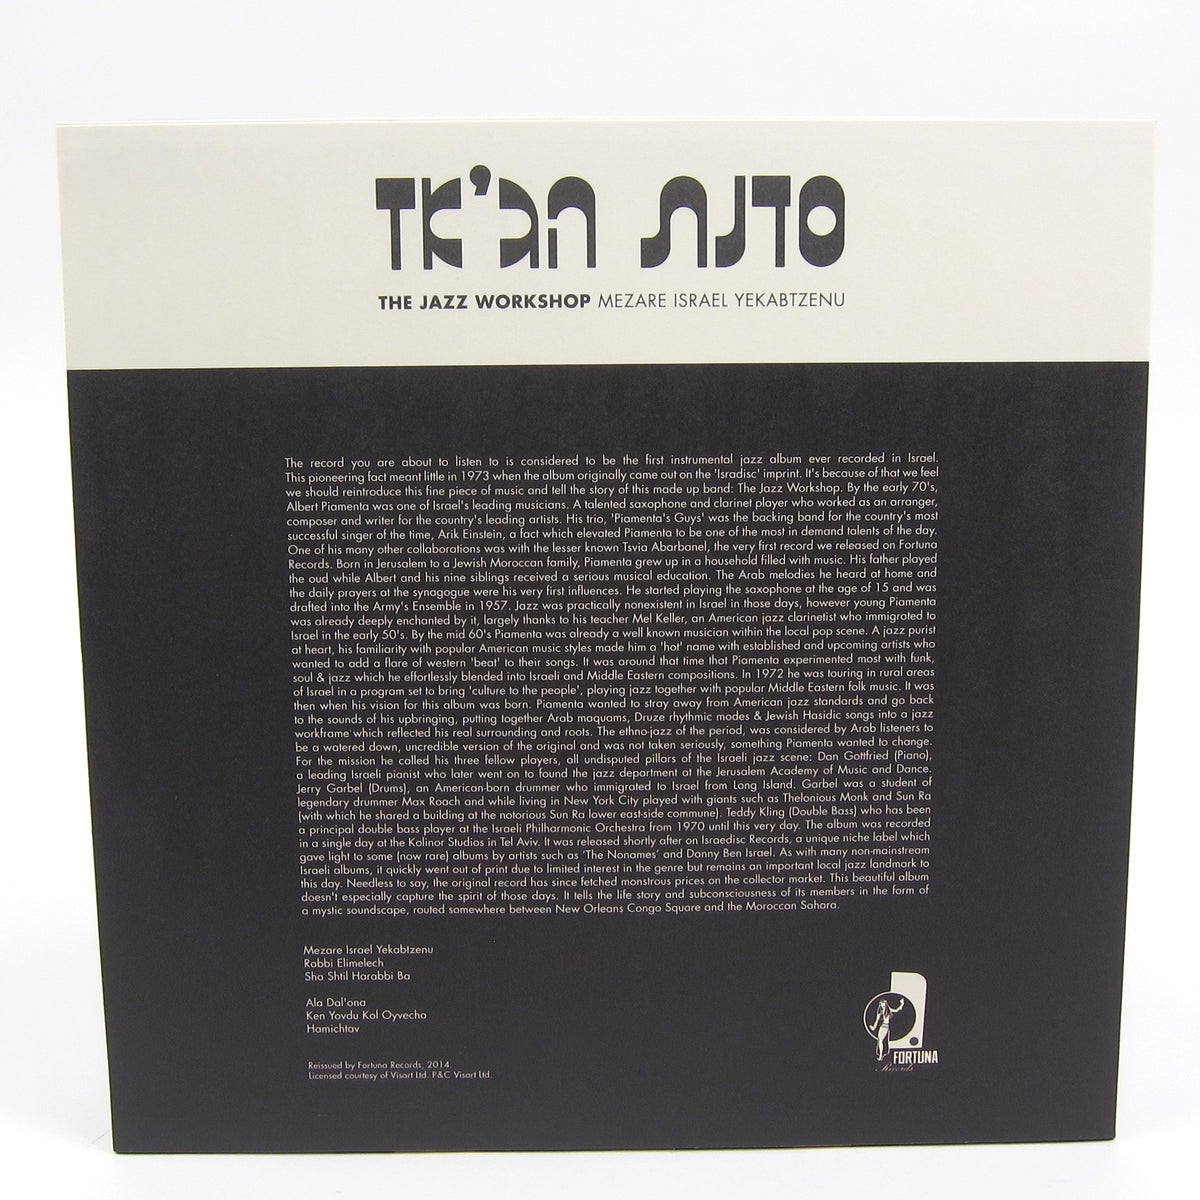 The Jazz Workshop: Mezare Israel Yekabtzenu Vinyl LP